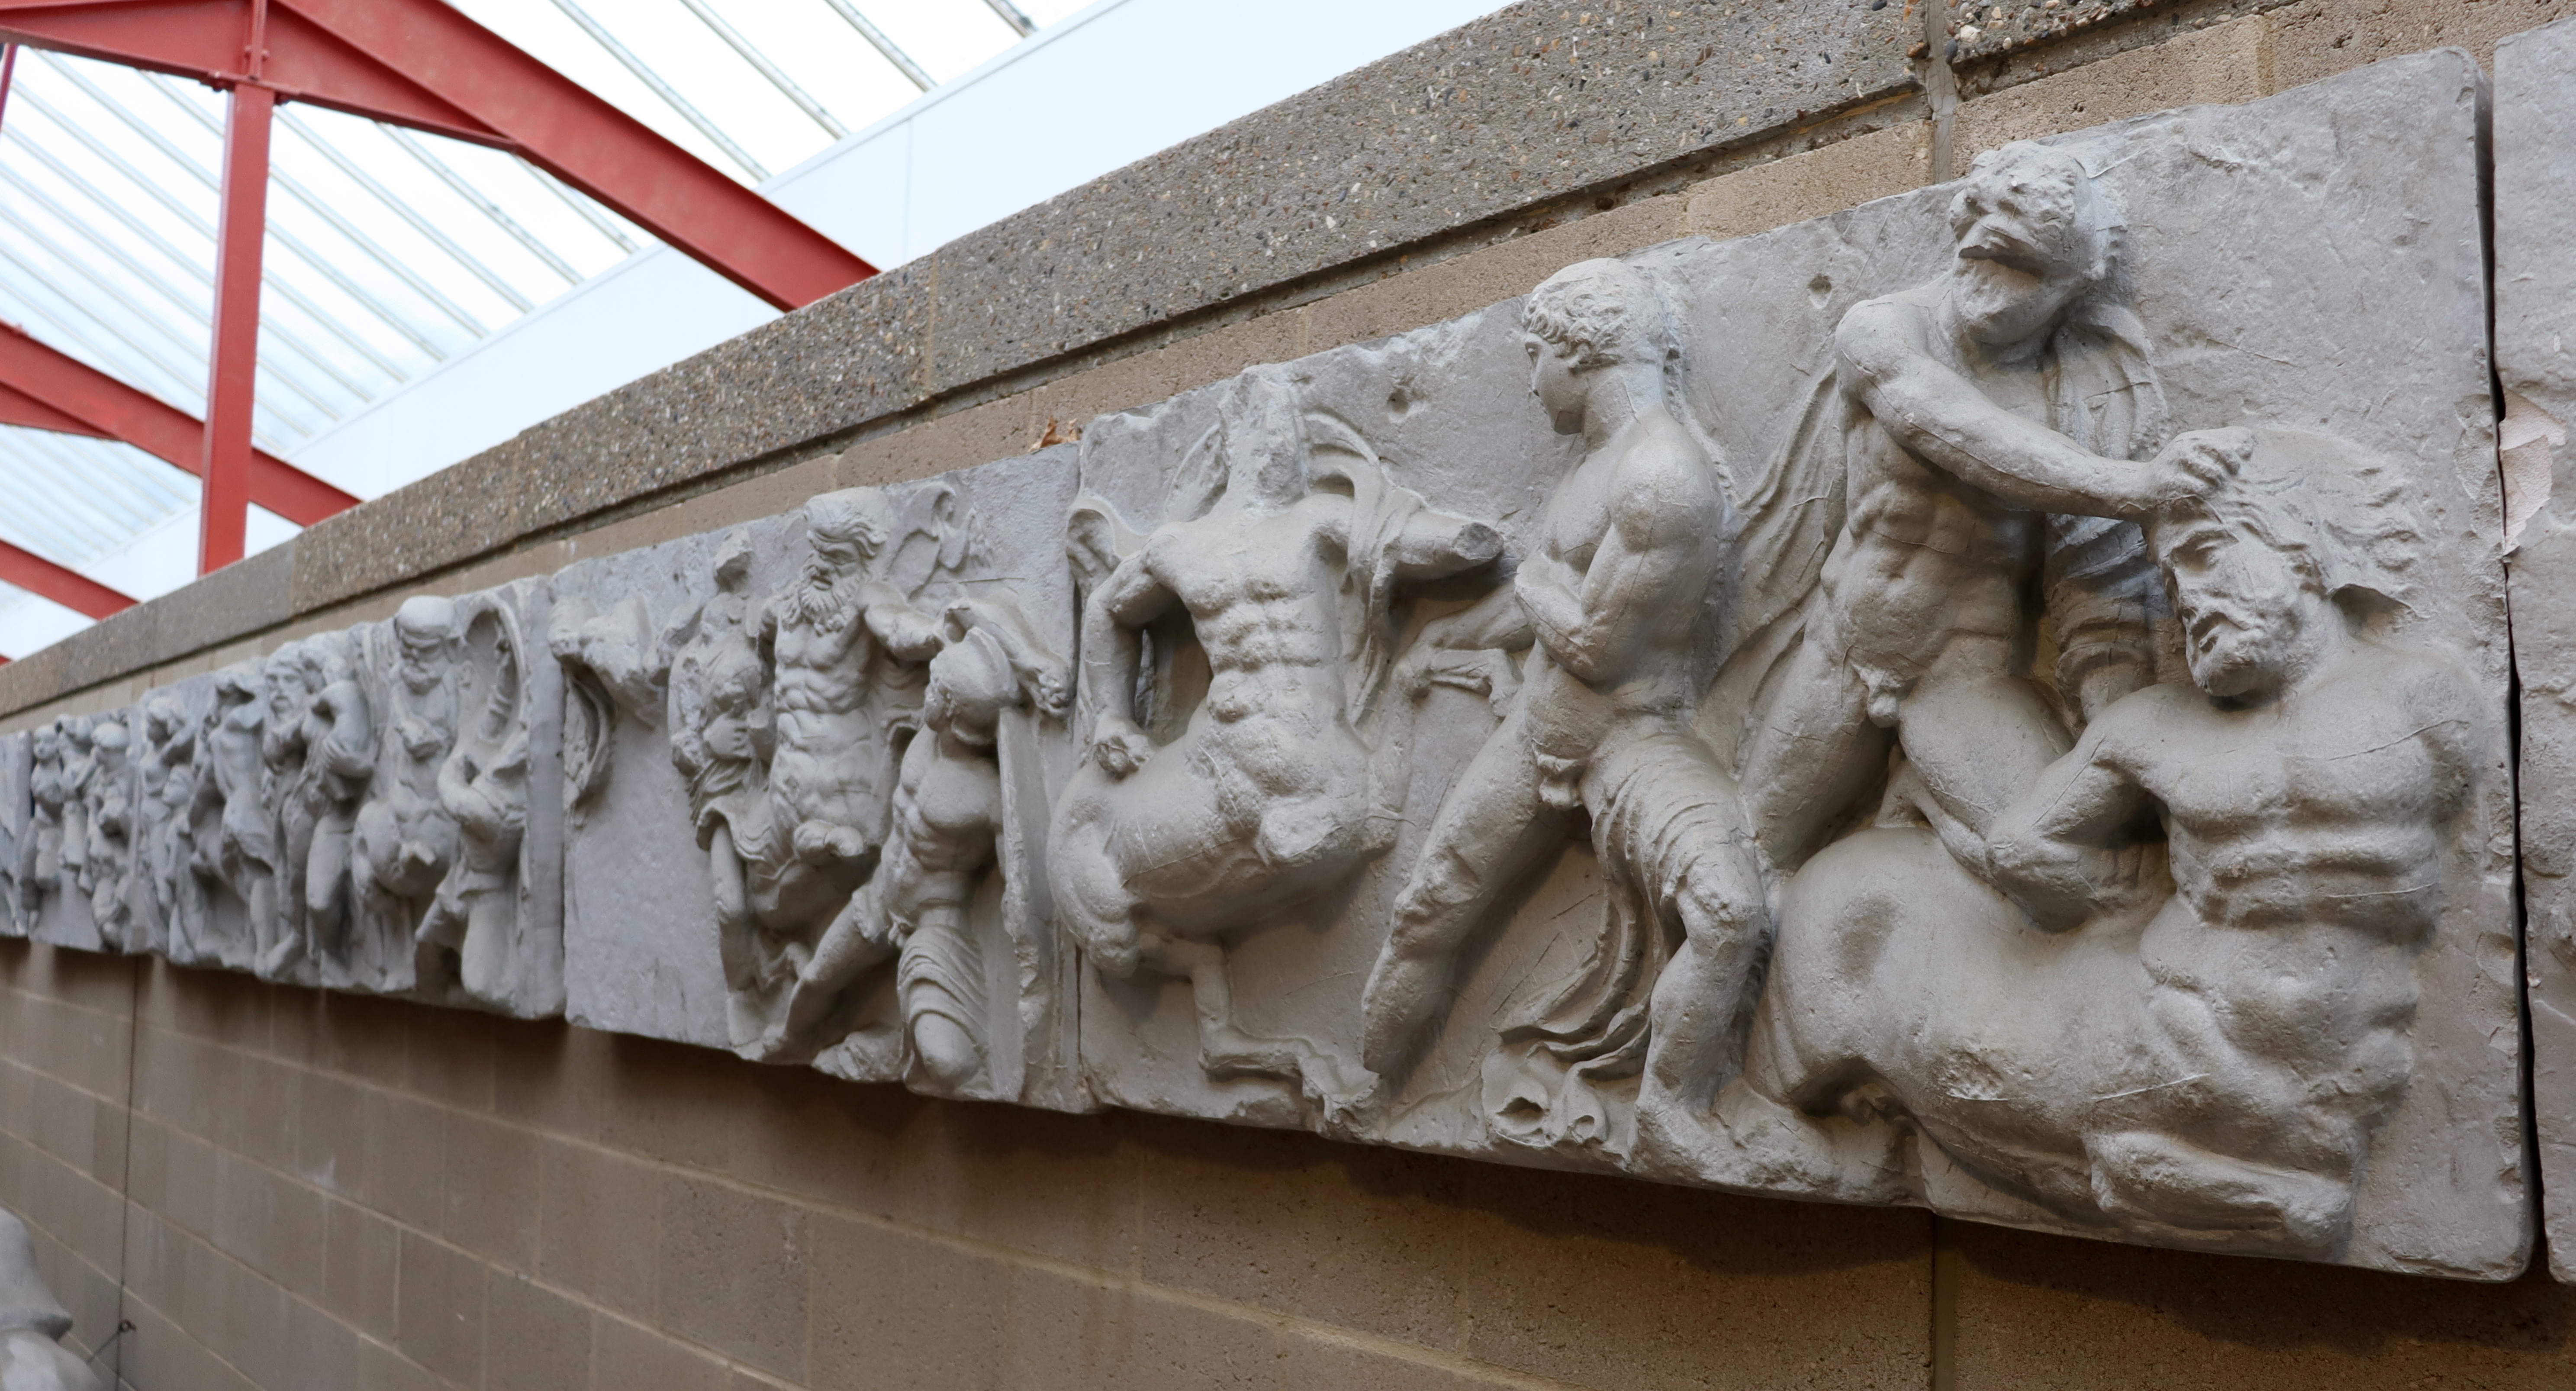 view of Bassai frieze with fighting centaurs